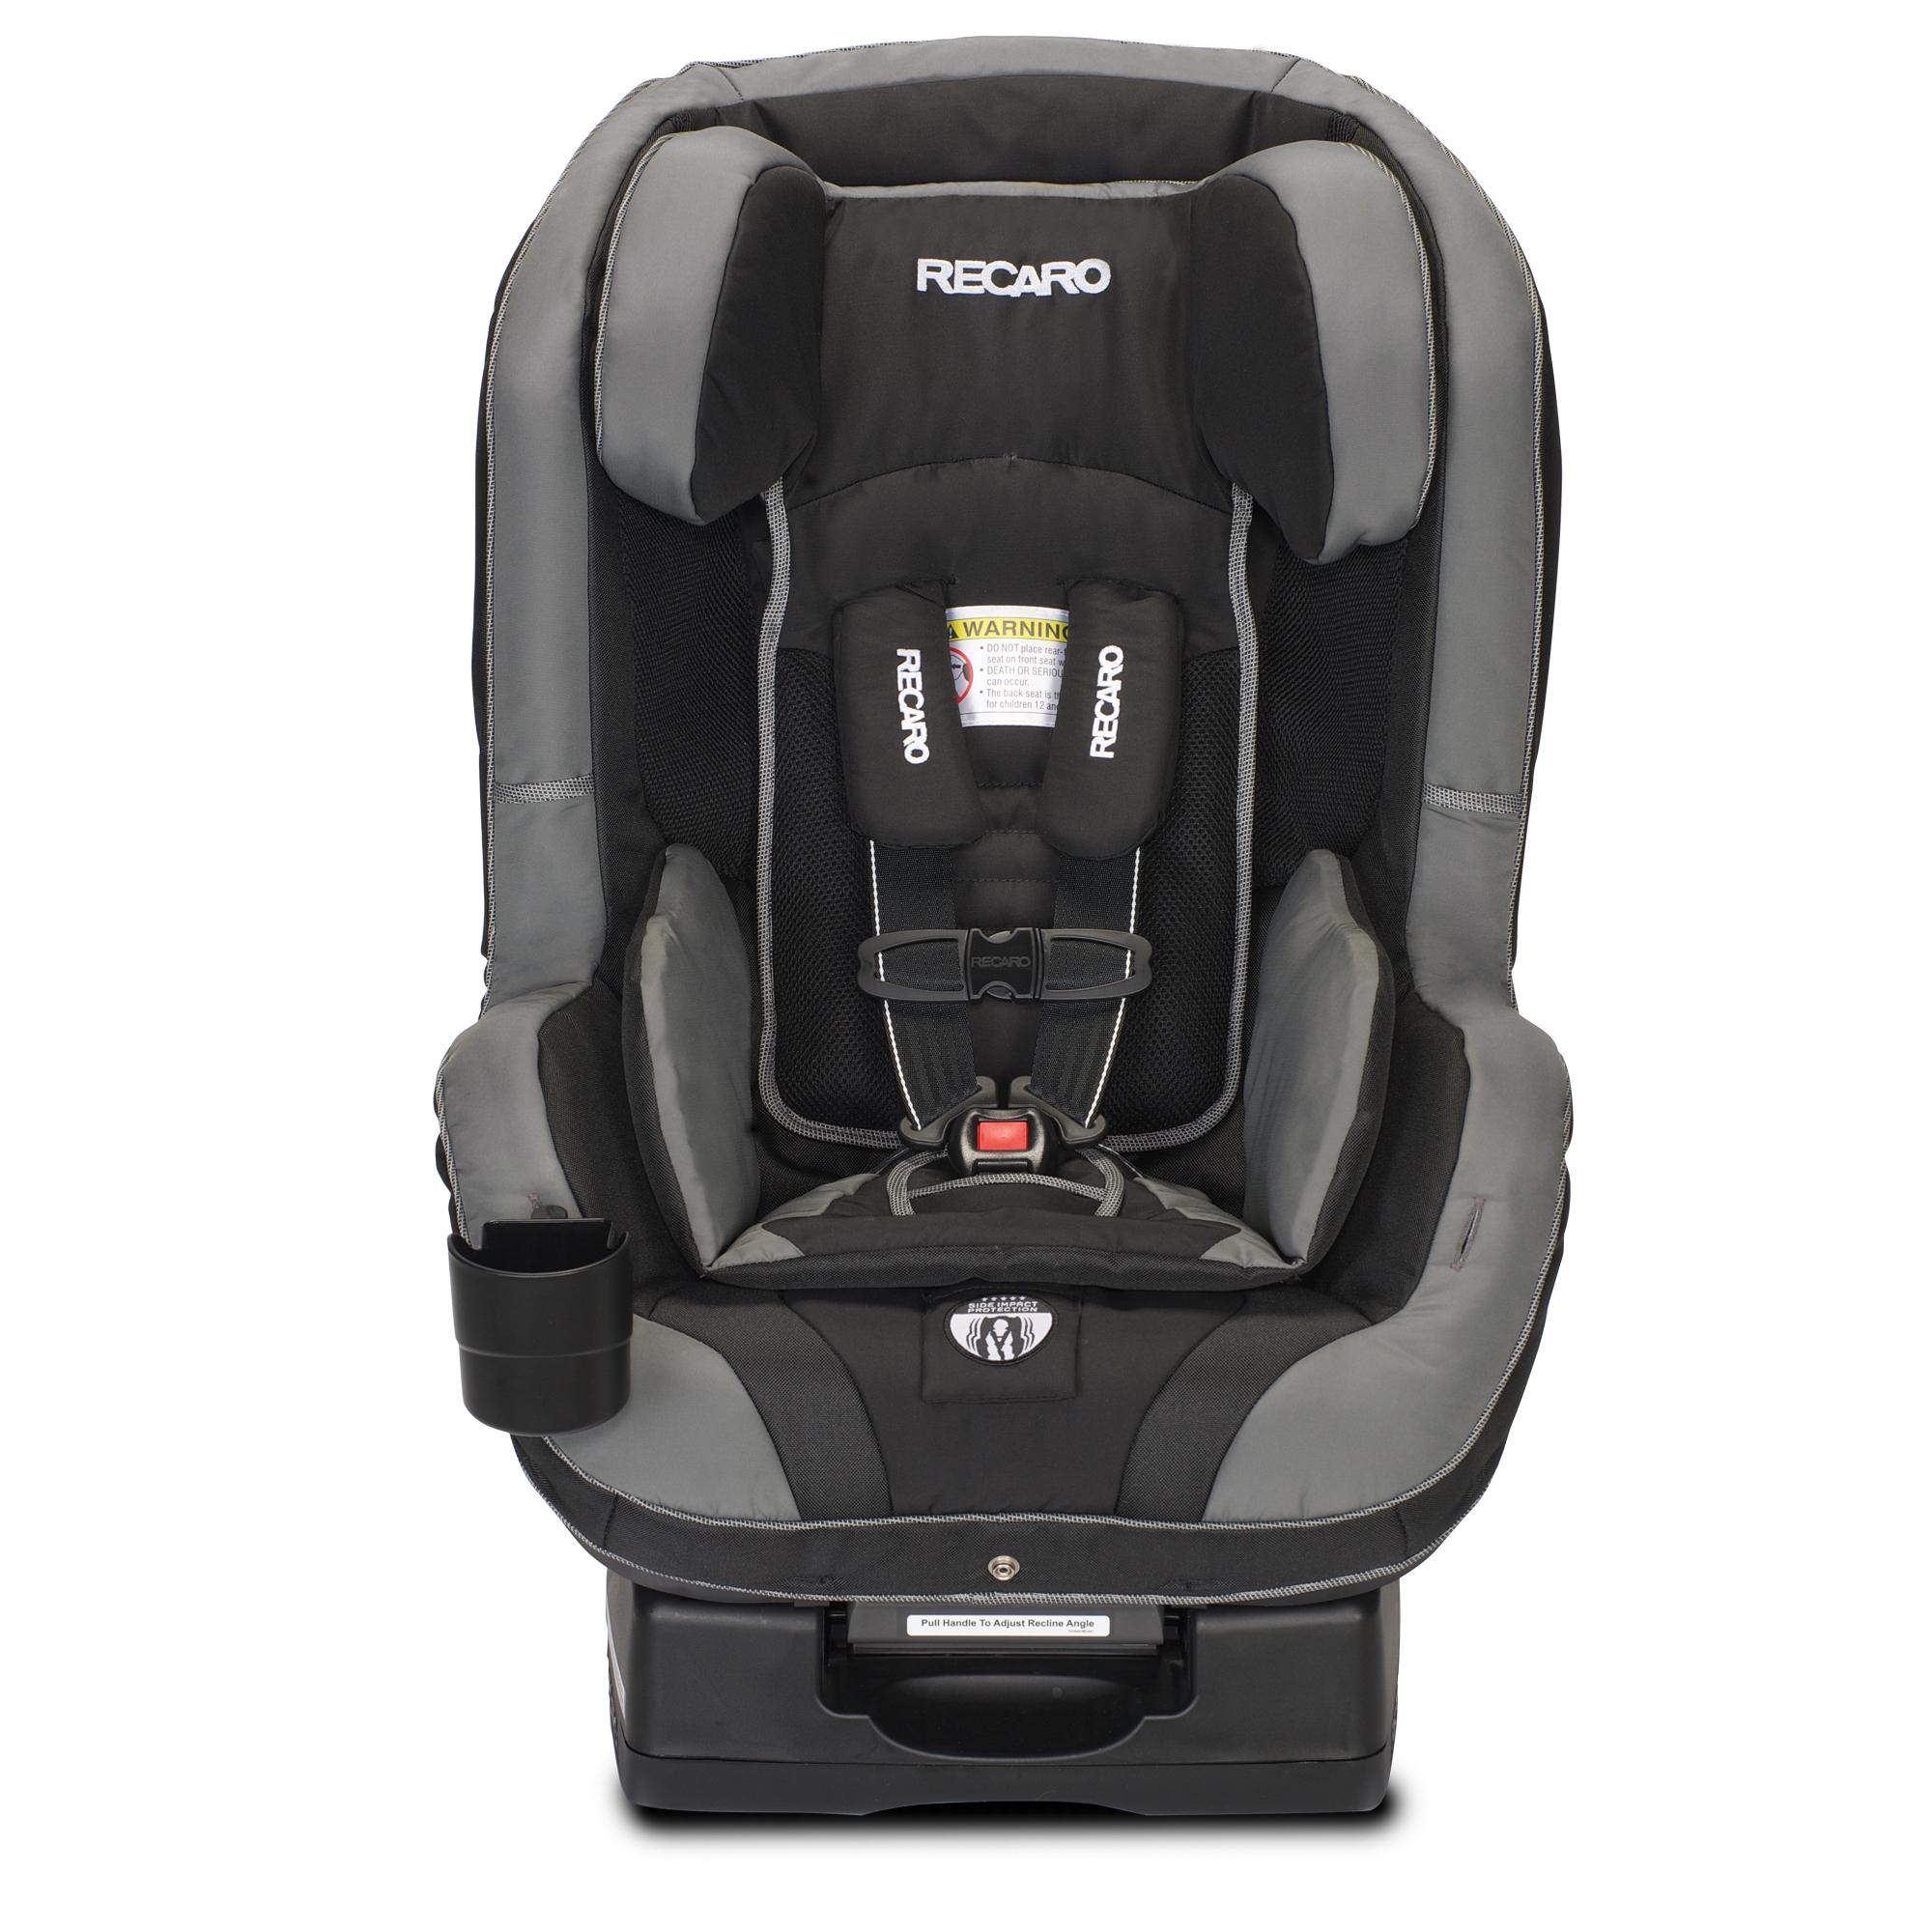 recaro 2015 performance ride convertible car seat baby child infant safety drive ebay. Black Bedroom Furniture Sets. Home Design Ideas